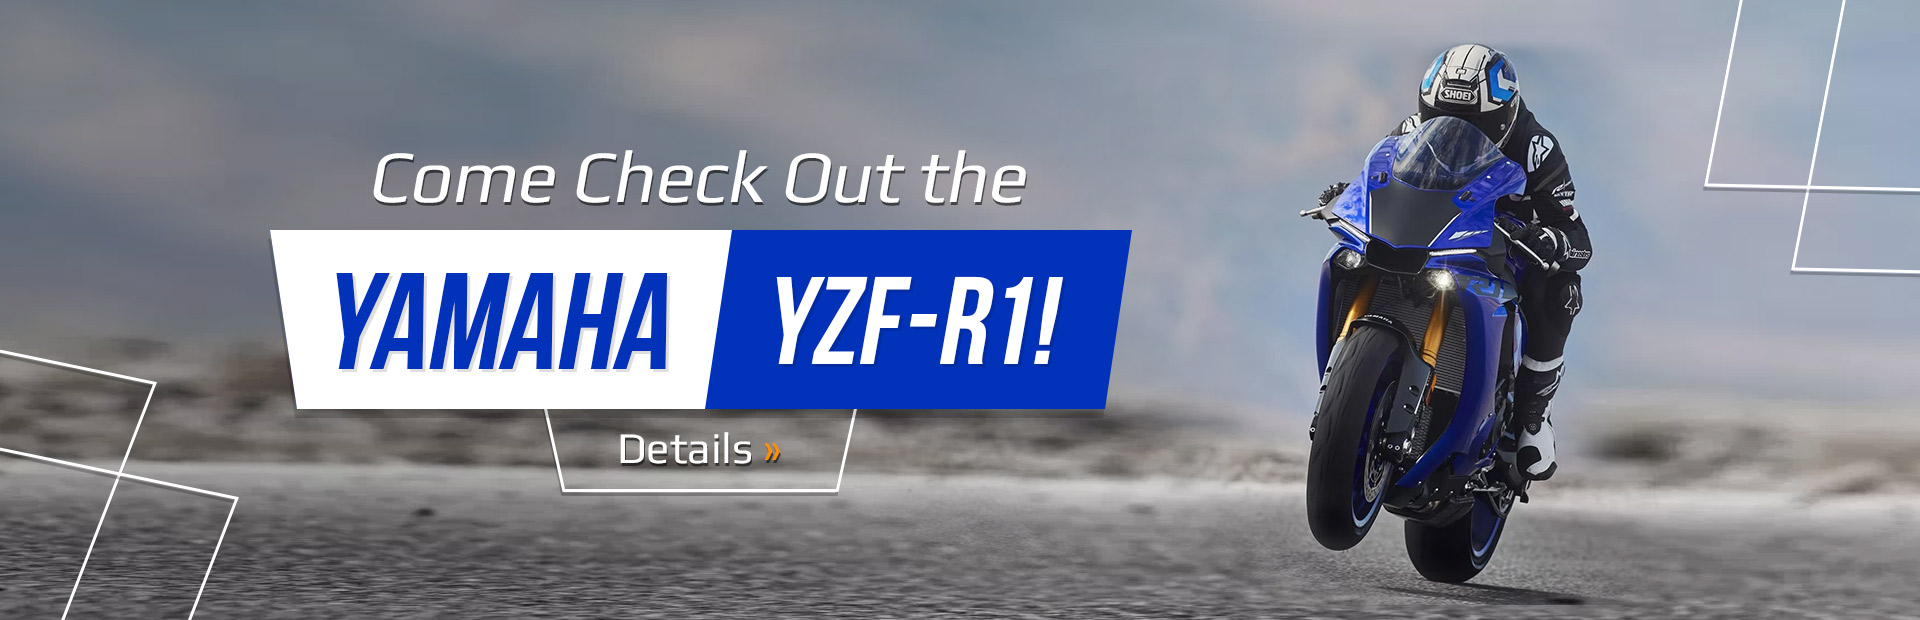 Check out the Yamaha YZF-R1!